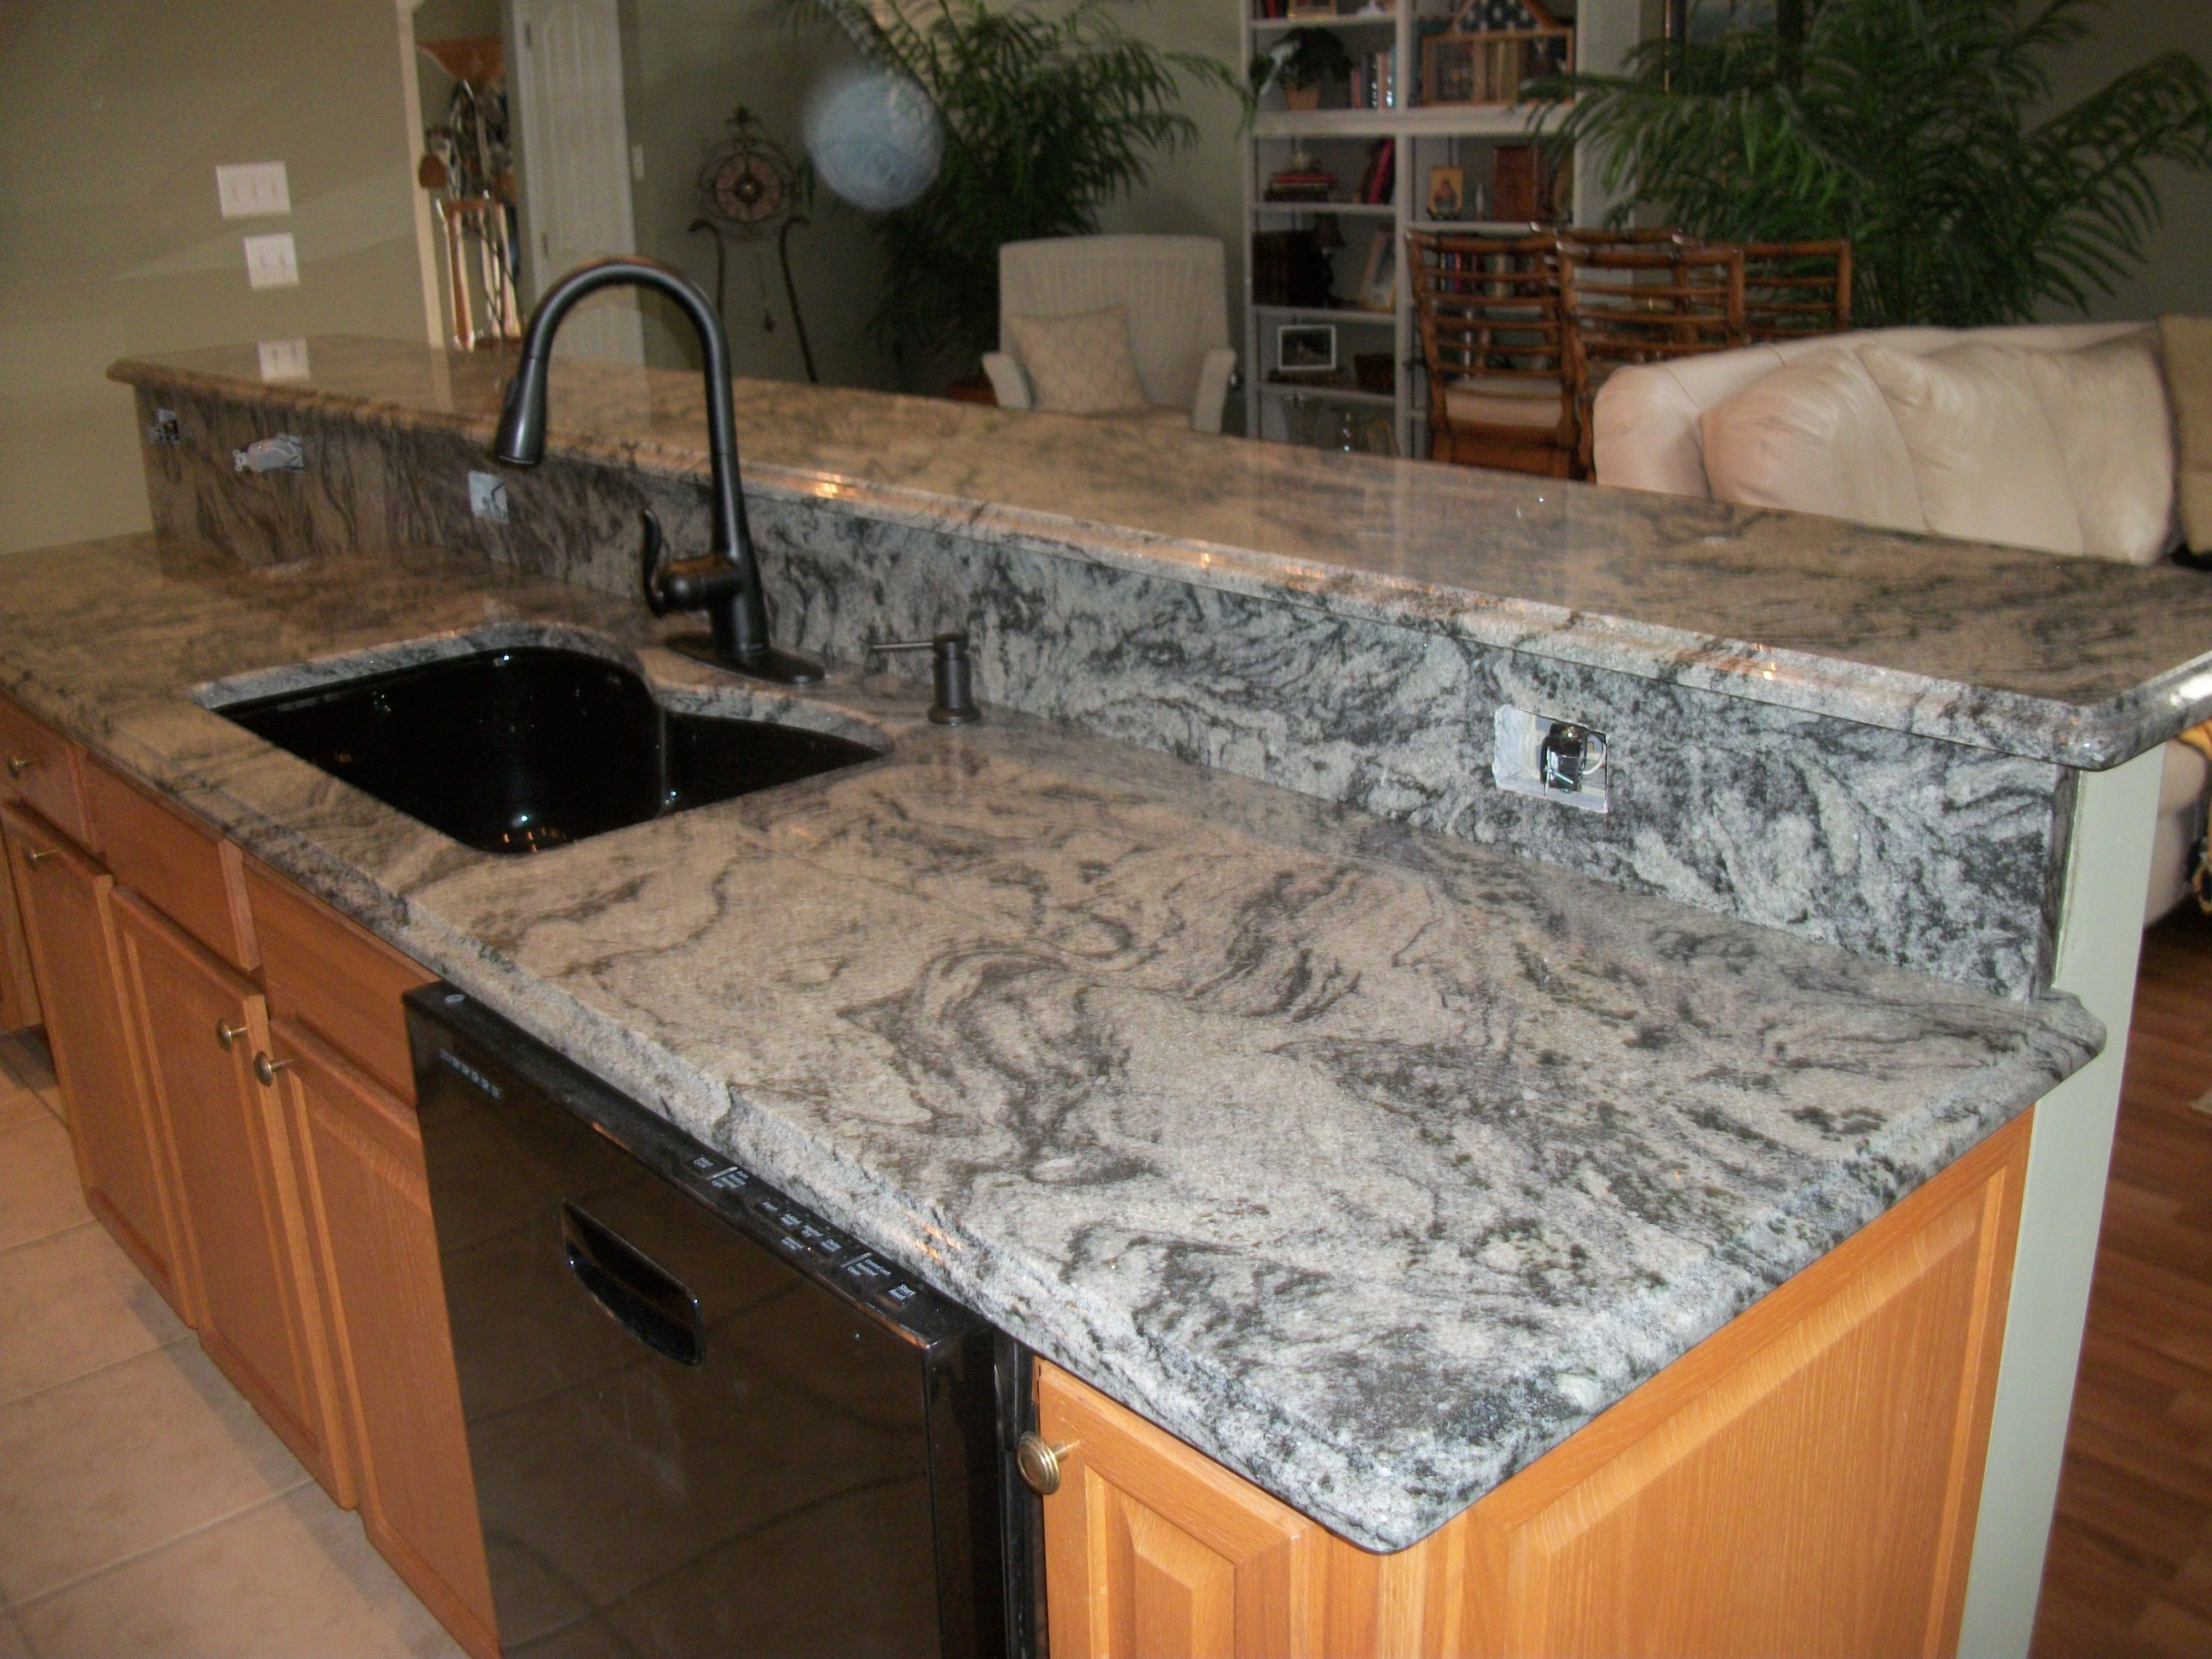 Kitchen counter tops in 3cm candeais granite with ogee edge detail